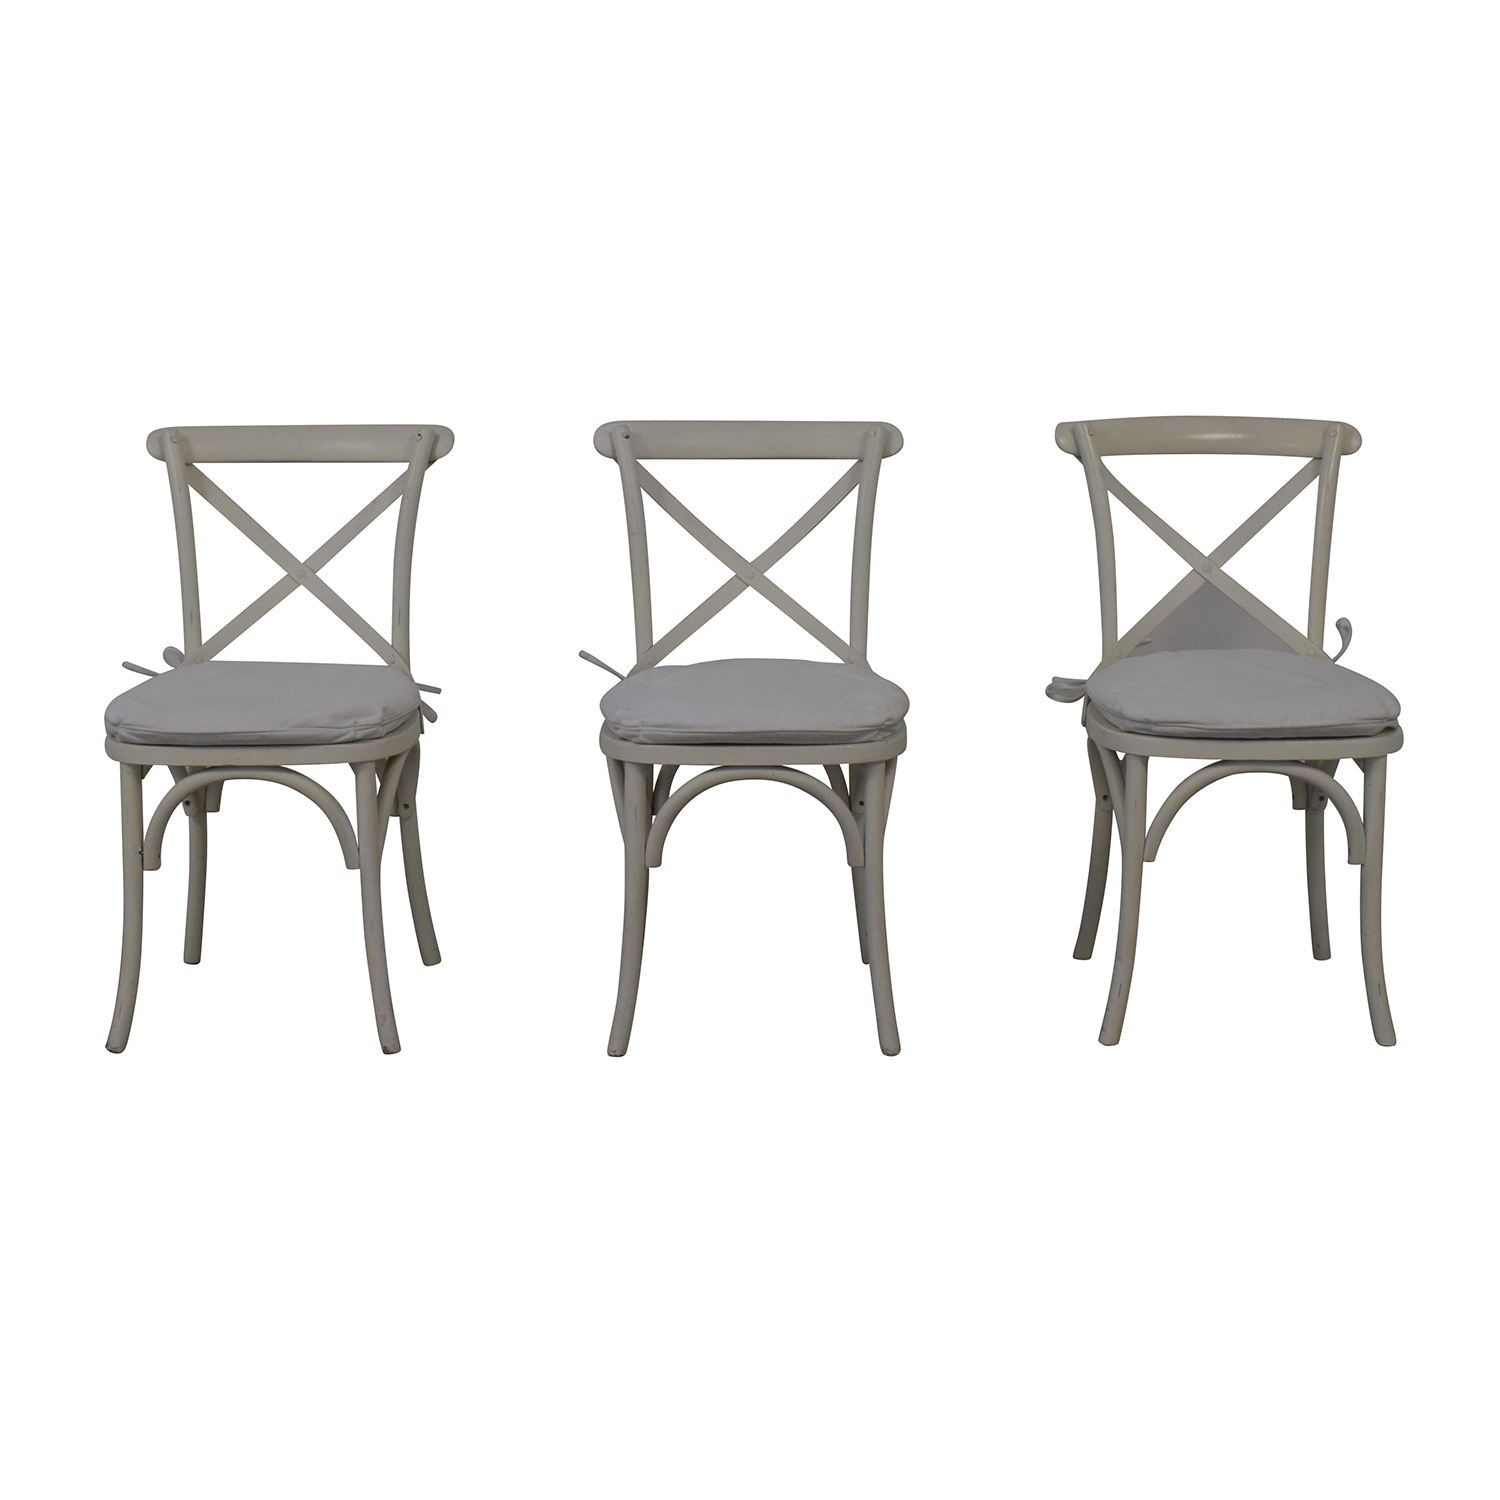 Restoration Hardware Restoration Hardware Madeline Chairs with Covers used